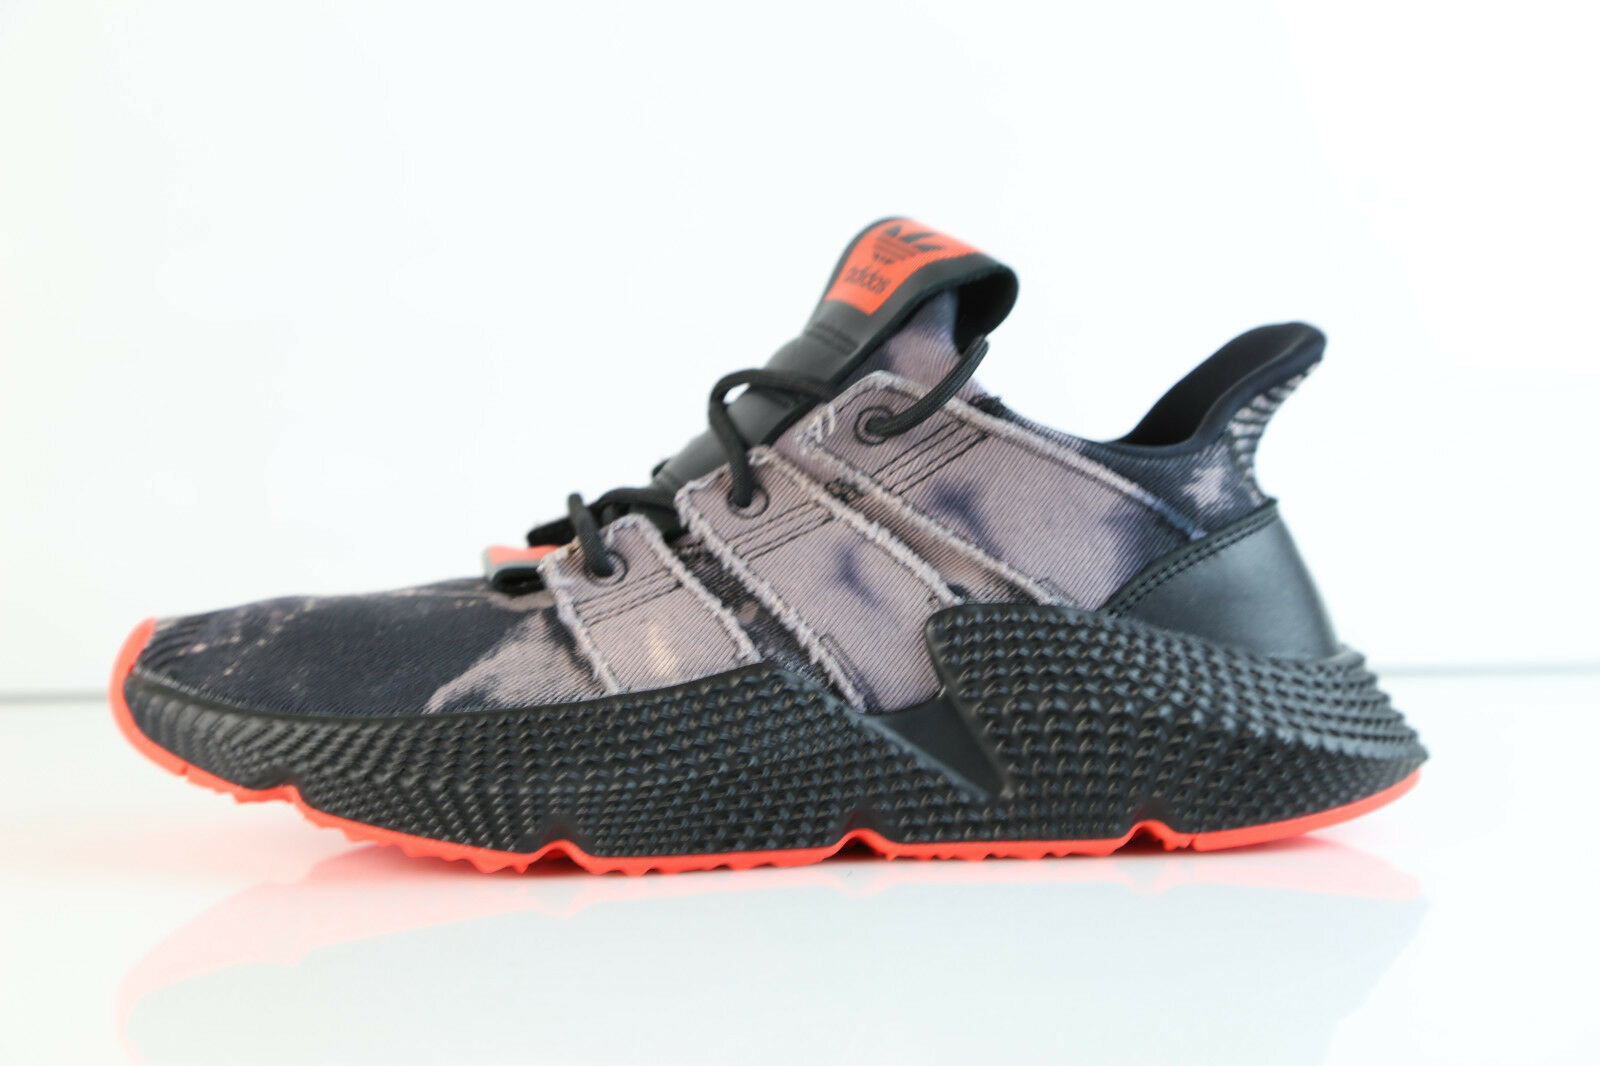 6fa33853200b Adidas Prophere Rogue Bleached Camo Canvas Black Solar Red Red Red DB1982  8-13 run